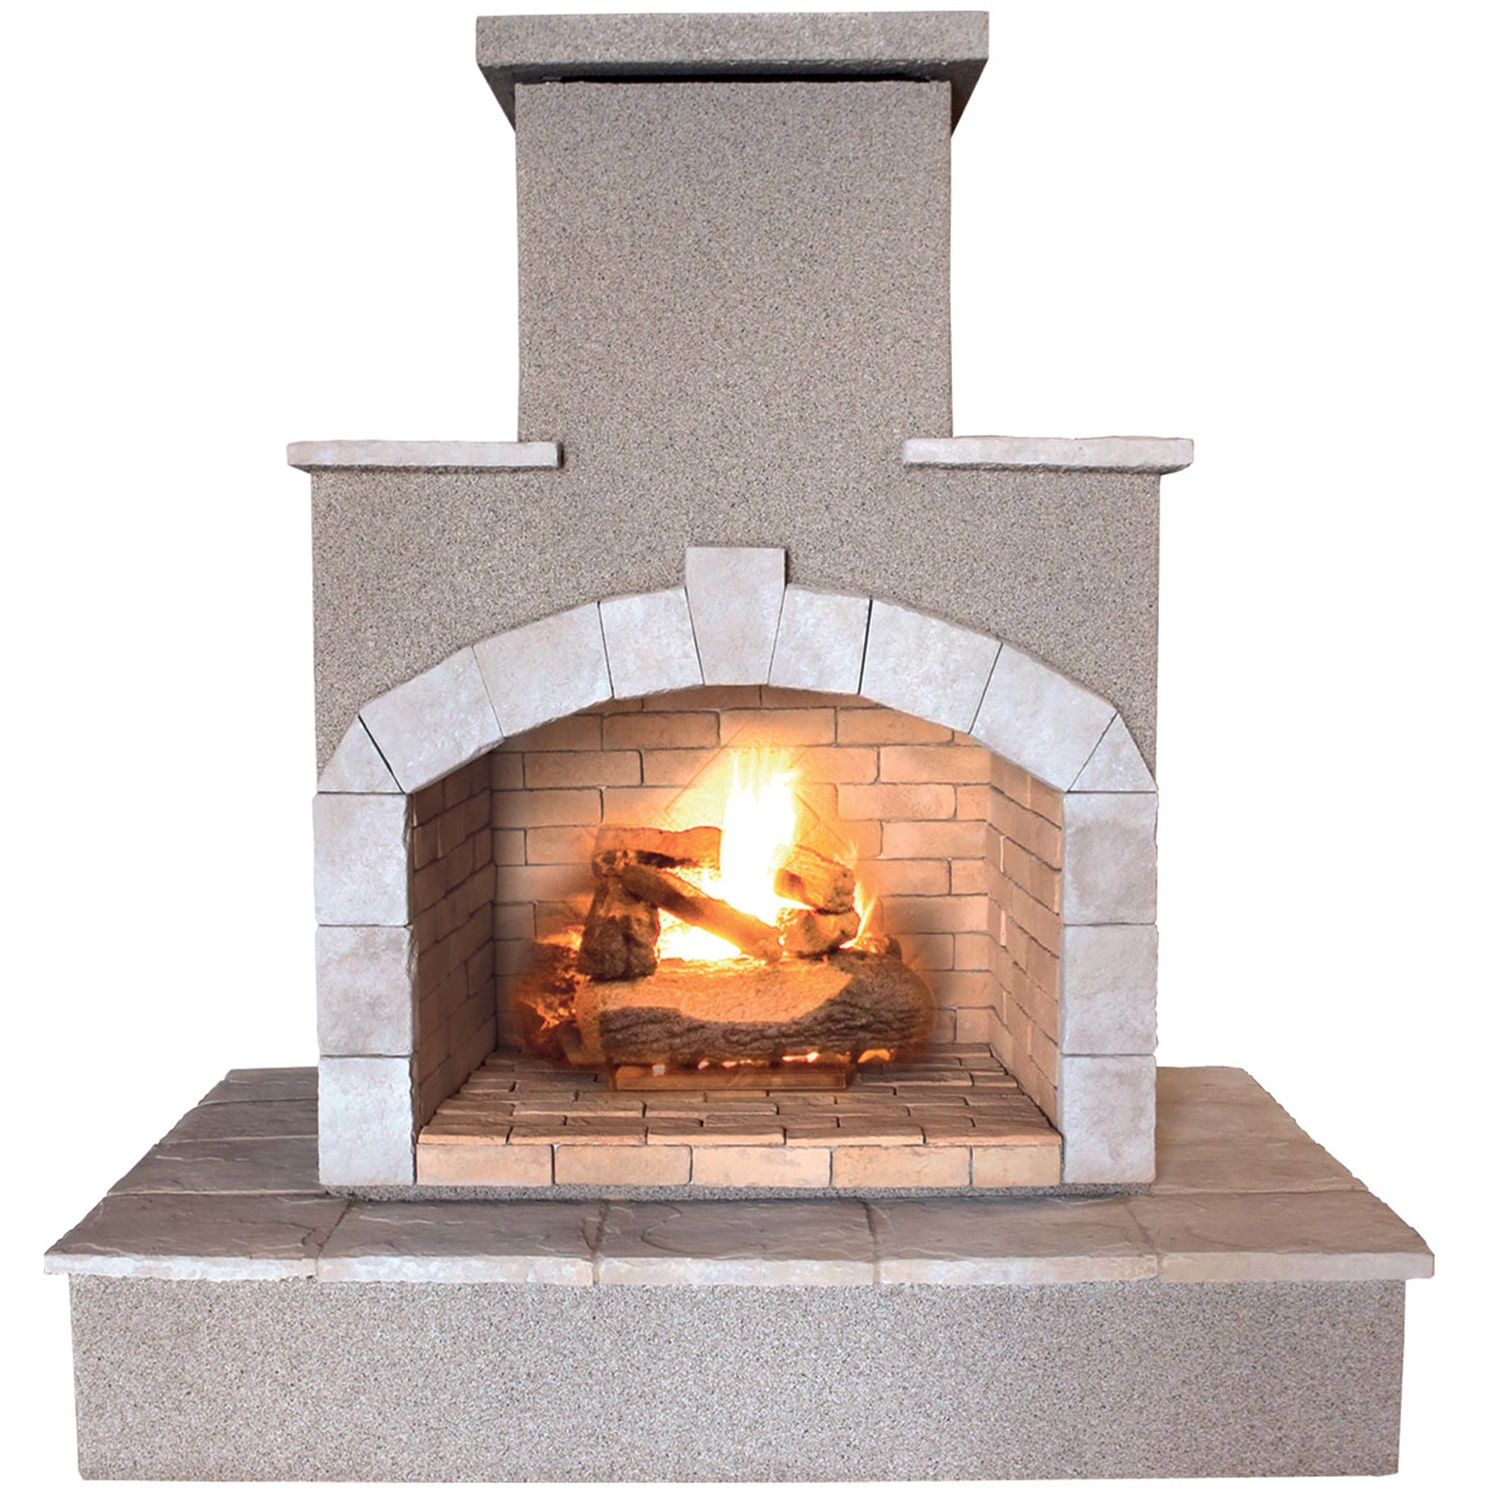 Cal Flame 78-inch Propane Gas Outdoor Fireplace by Overstock